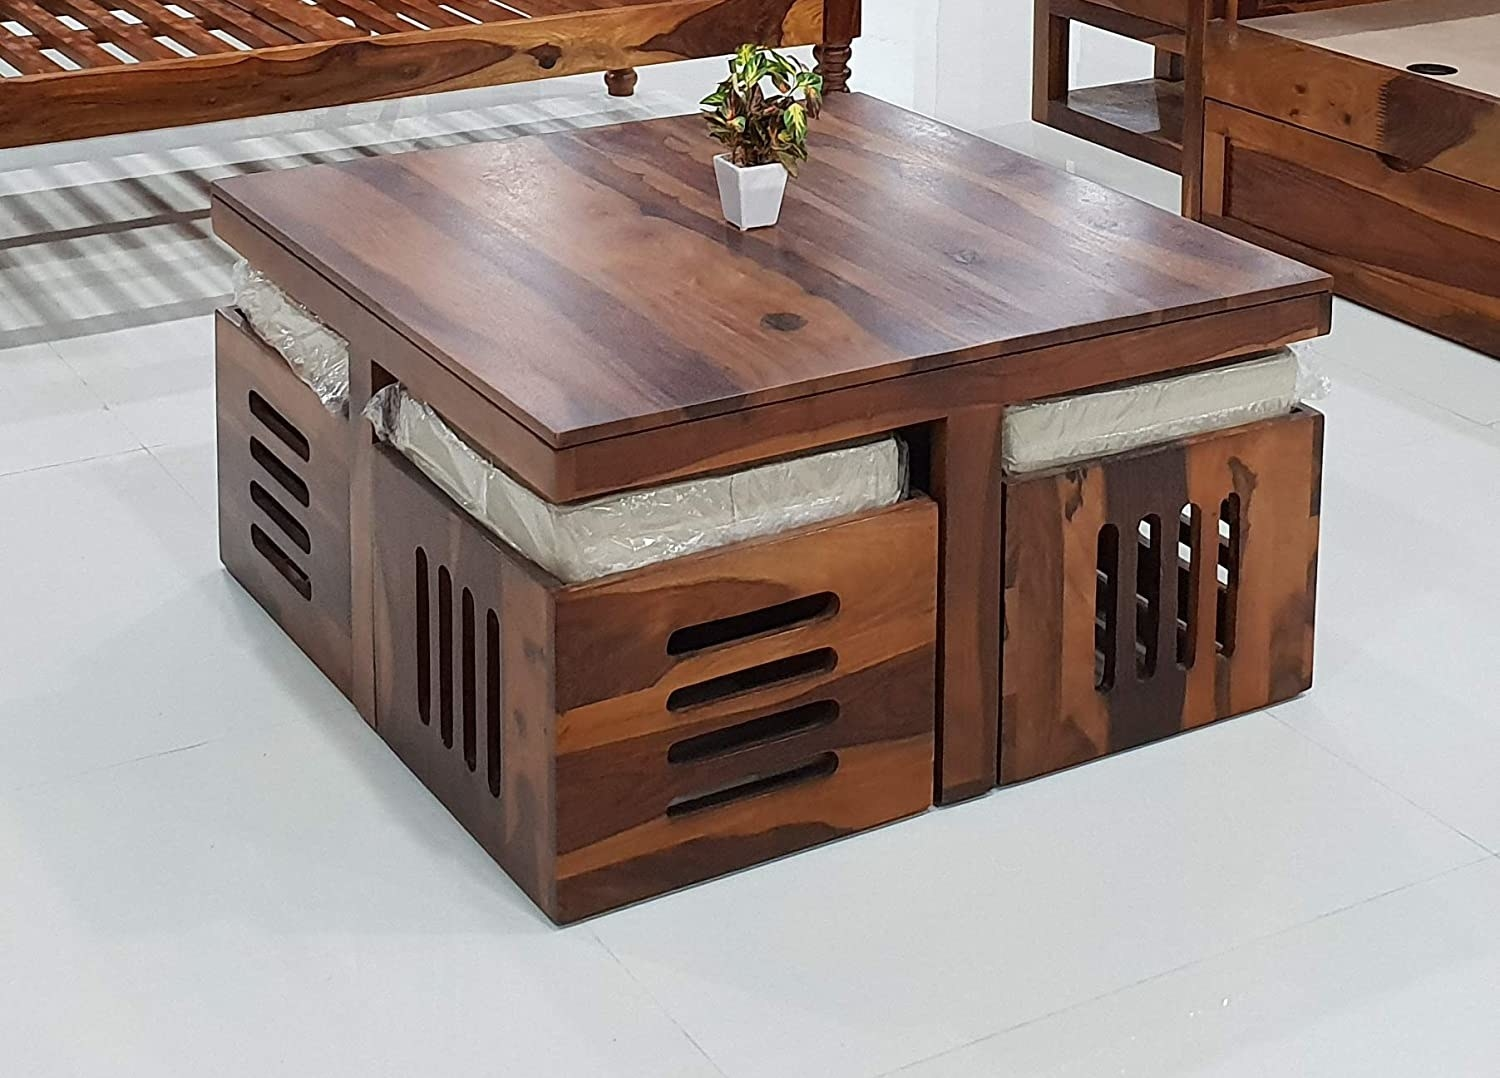 A table with 4 stools inside of it